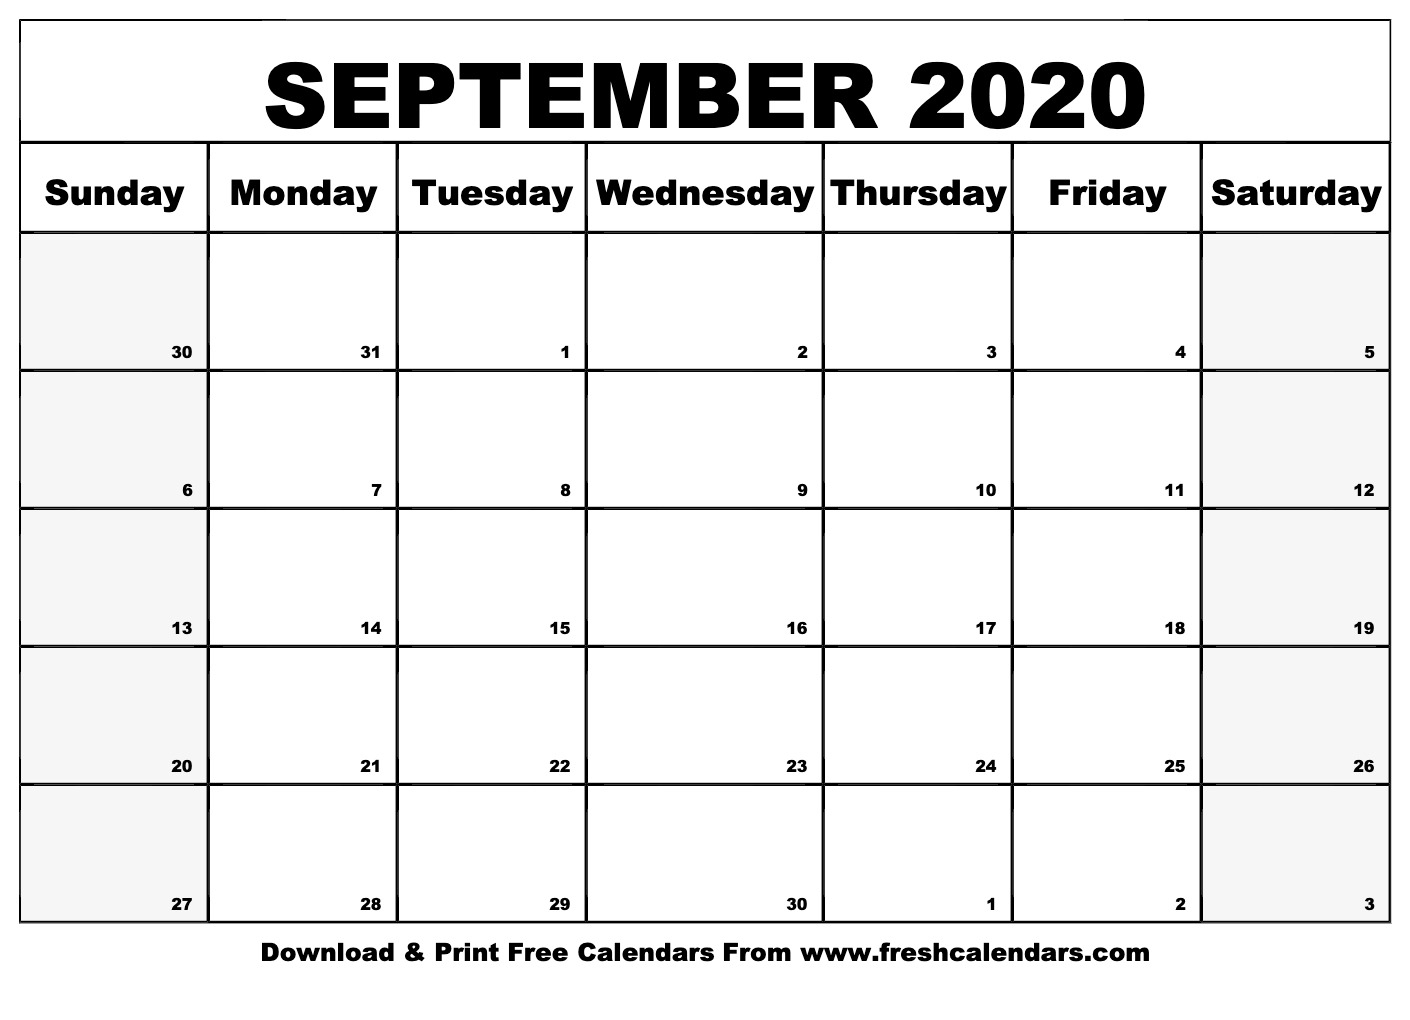 Free Printable September 2020 Calendar intended for Free Printable Monthly Calendar September 2020